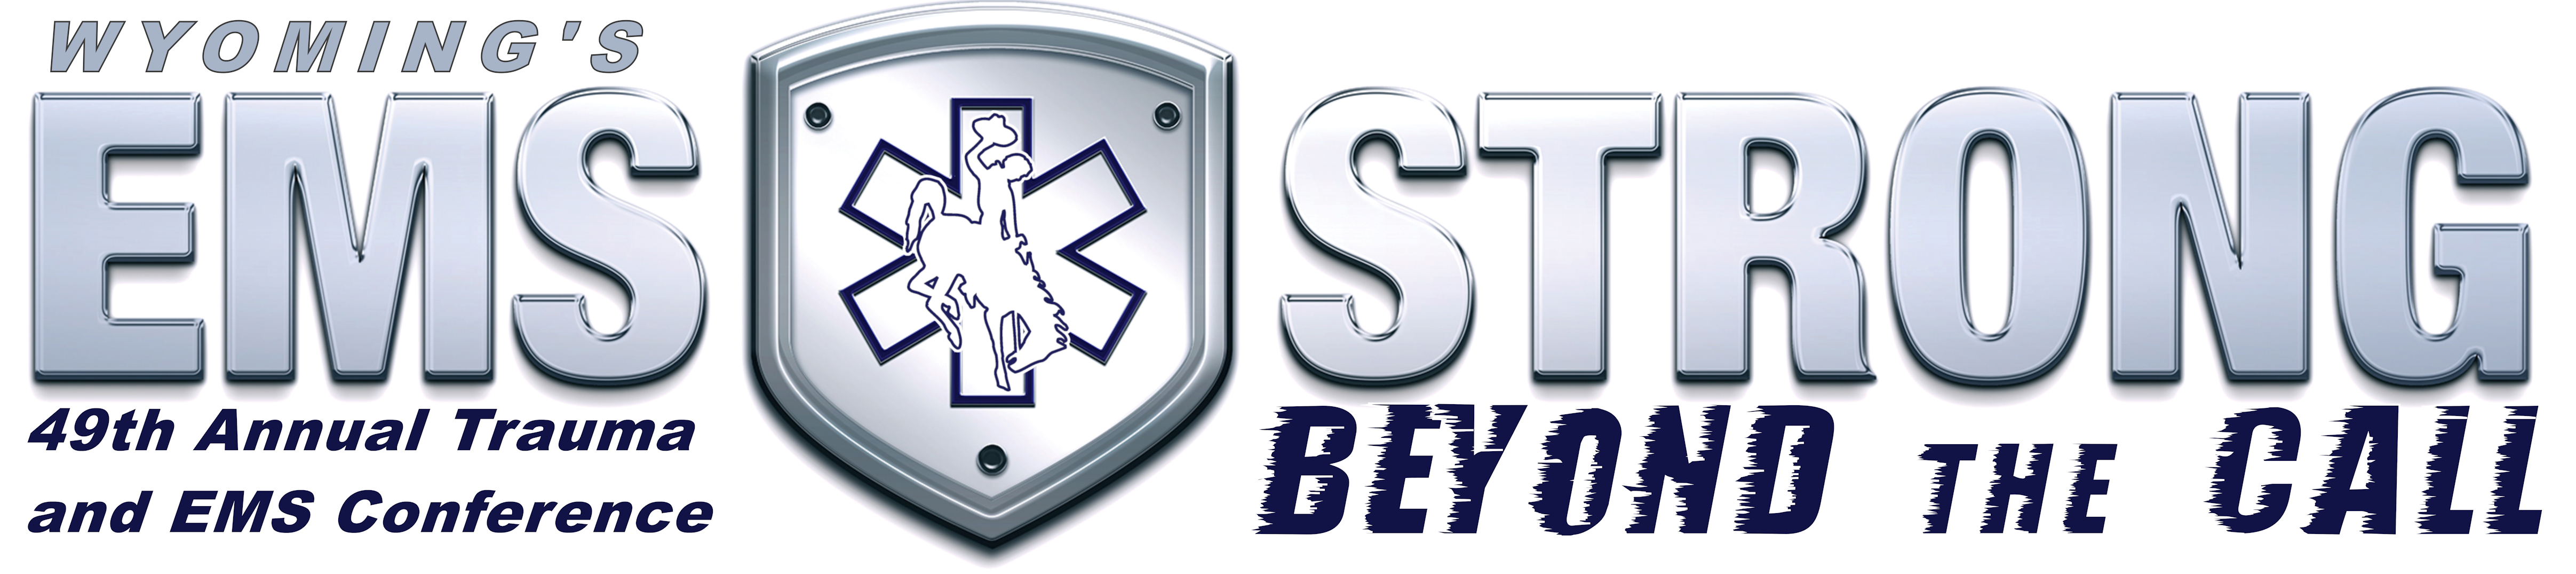 49th Annual Wyoming Trauma and EMS Conference - Wyoming Department